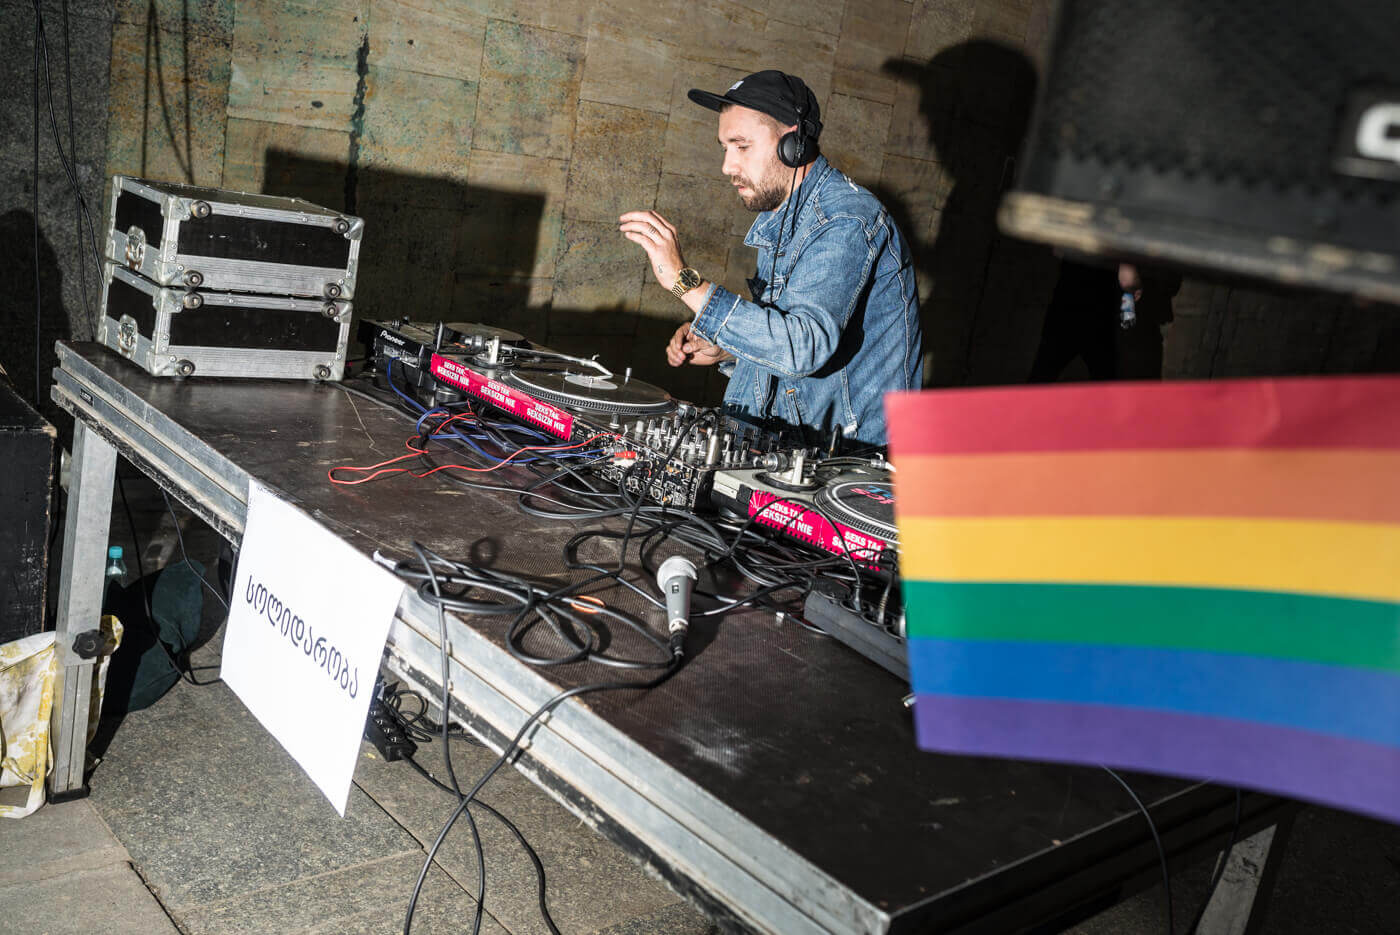 Dancing together: rave culture and social activism in Tbilisi